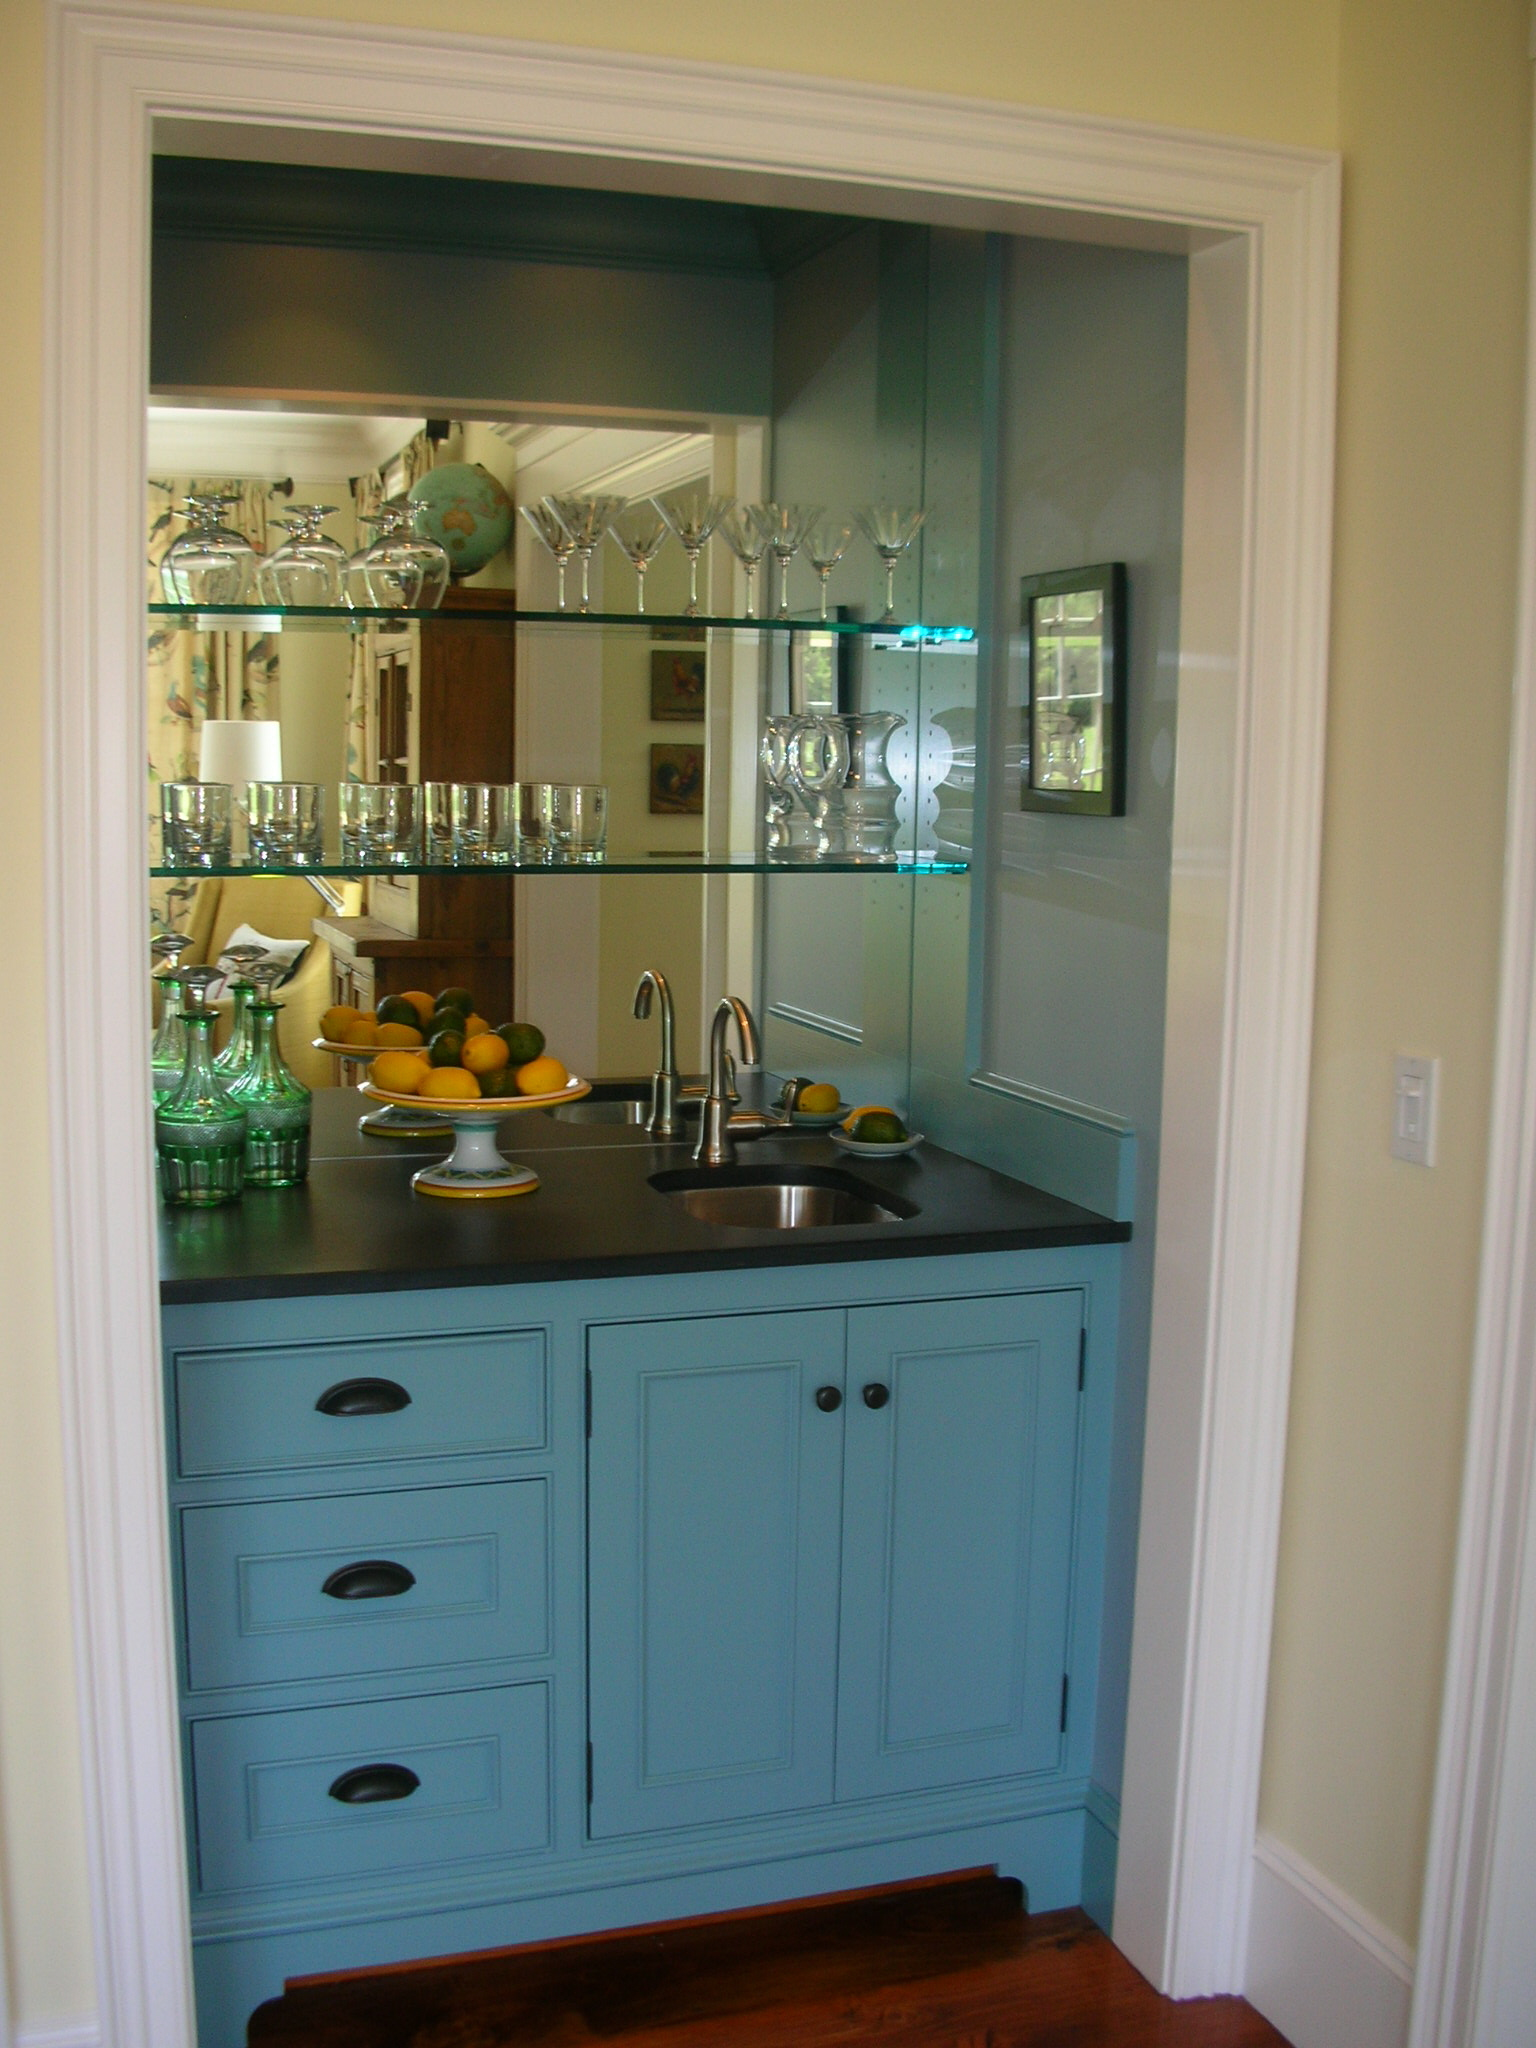 This built in wet bar has lots of storage.  Another plus is the mirrored back wall.  It helps reflect light in the space.